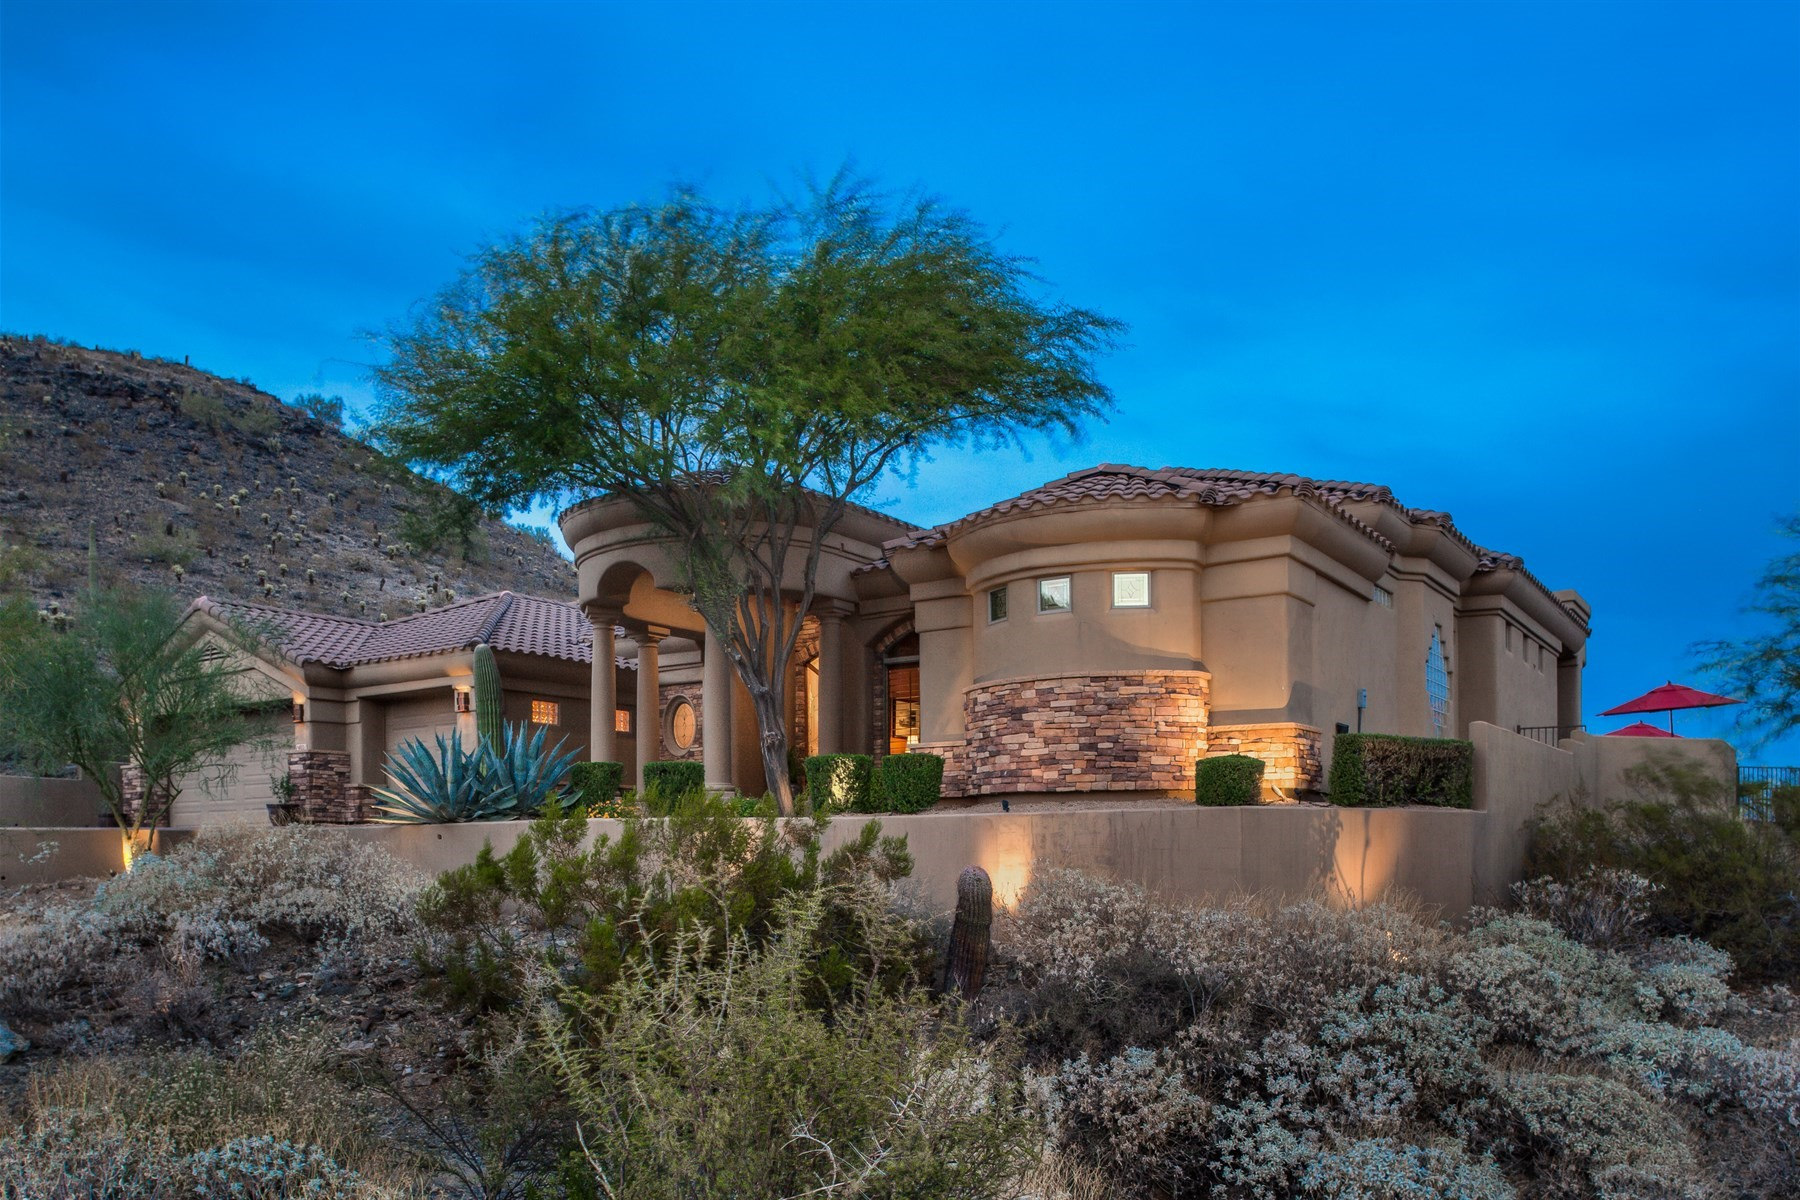 Single Family Home for Sale at Beautiful home in Tapestry Canyon 14021 S 19th St, Phoenix, Arizona, 85048 United States